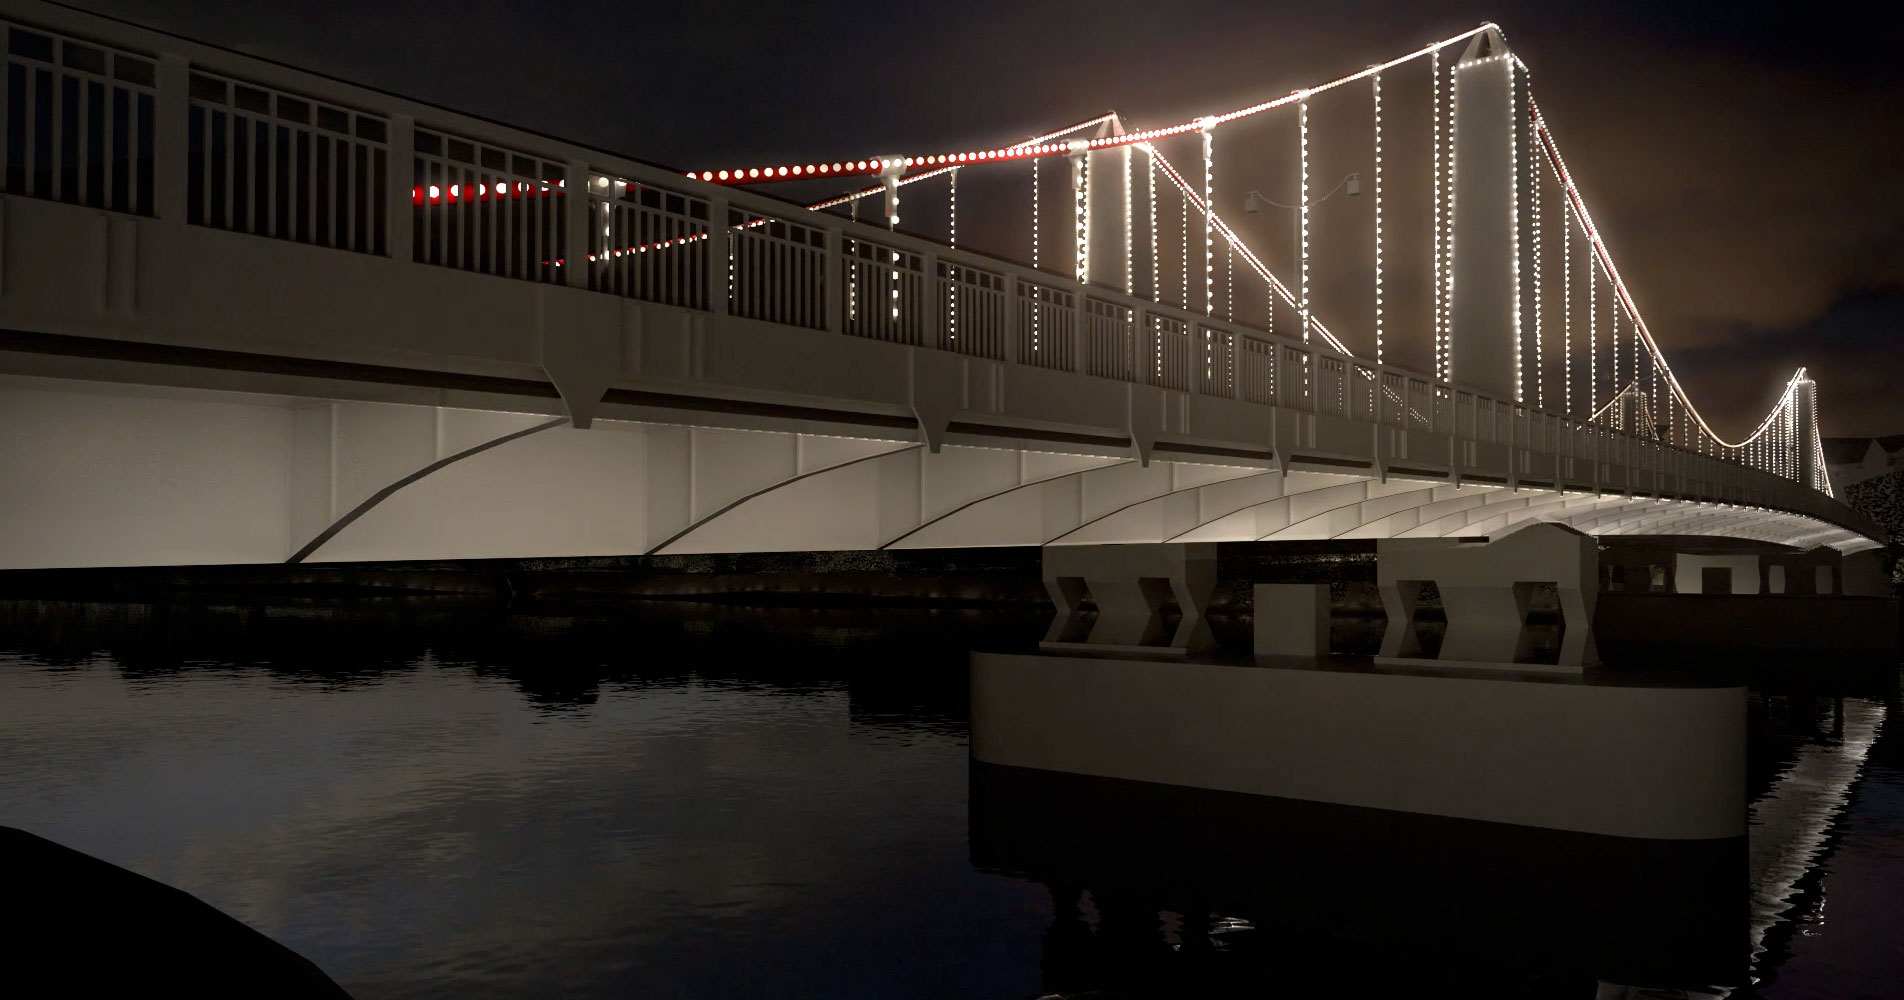 Illuminated River bridge installation by Leo Villareal and Lifschutz Davidson Sandilands